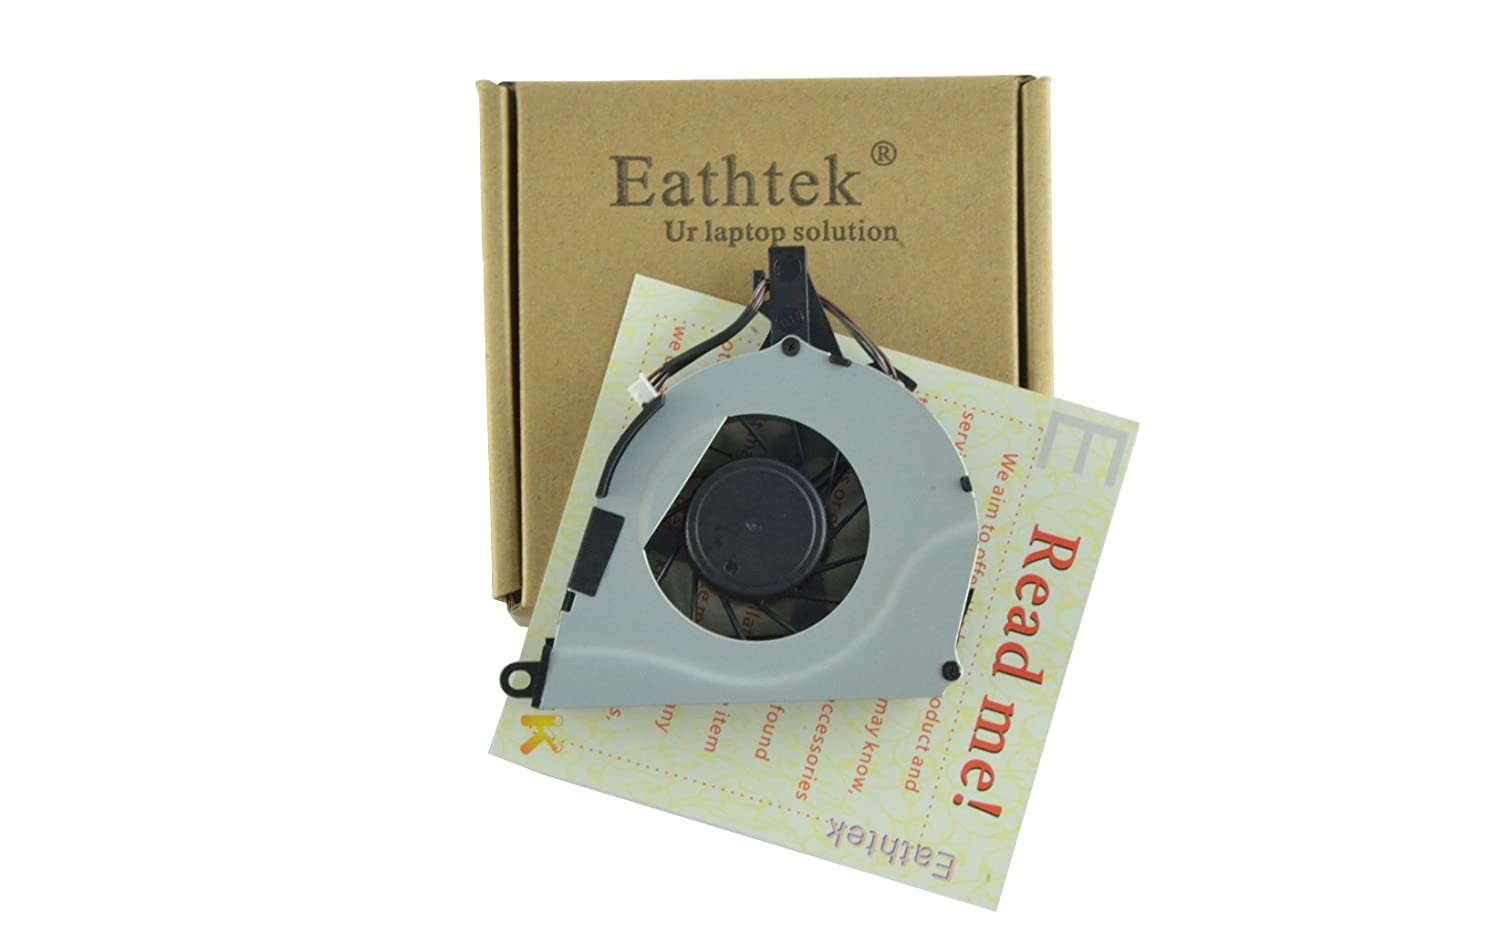 Eathtek Replacement CPU Cooling Fan for Toshiba Satellite L650 L655 AD5505HX-GB3 CWBL6 series